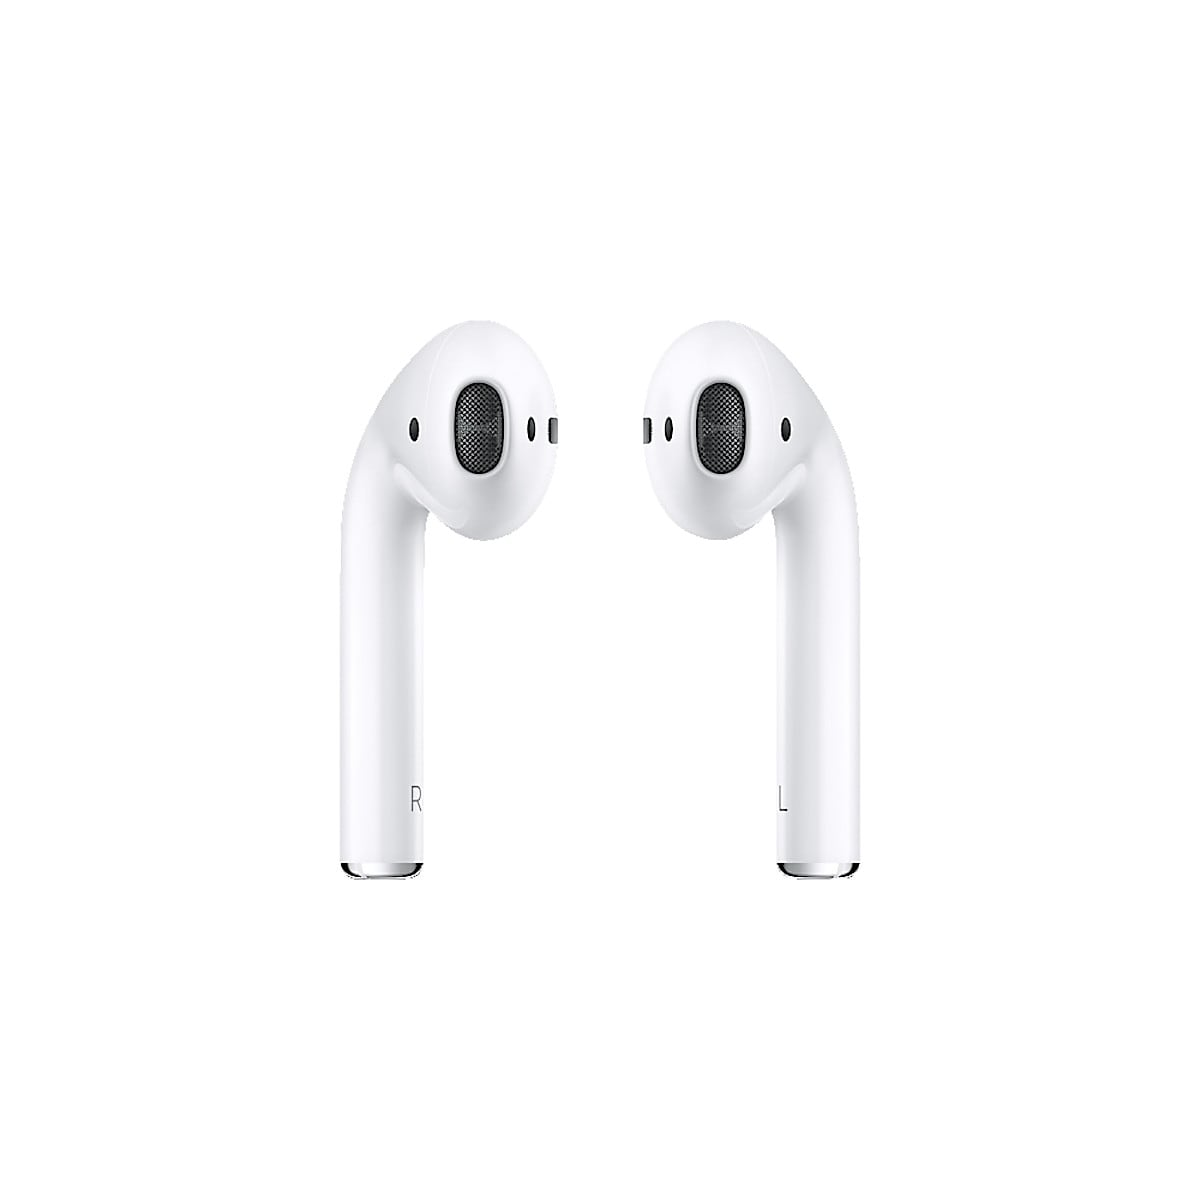 Apple AirPods Wireless Earbud Headphones with Microphone